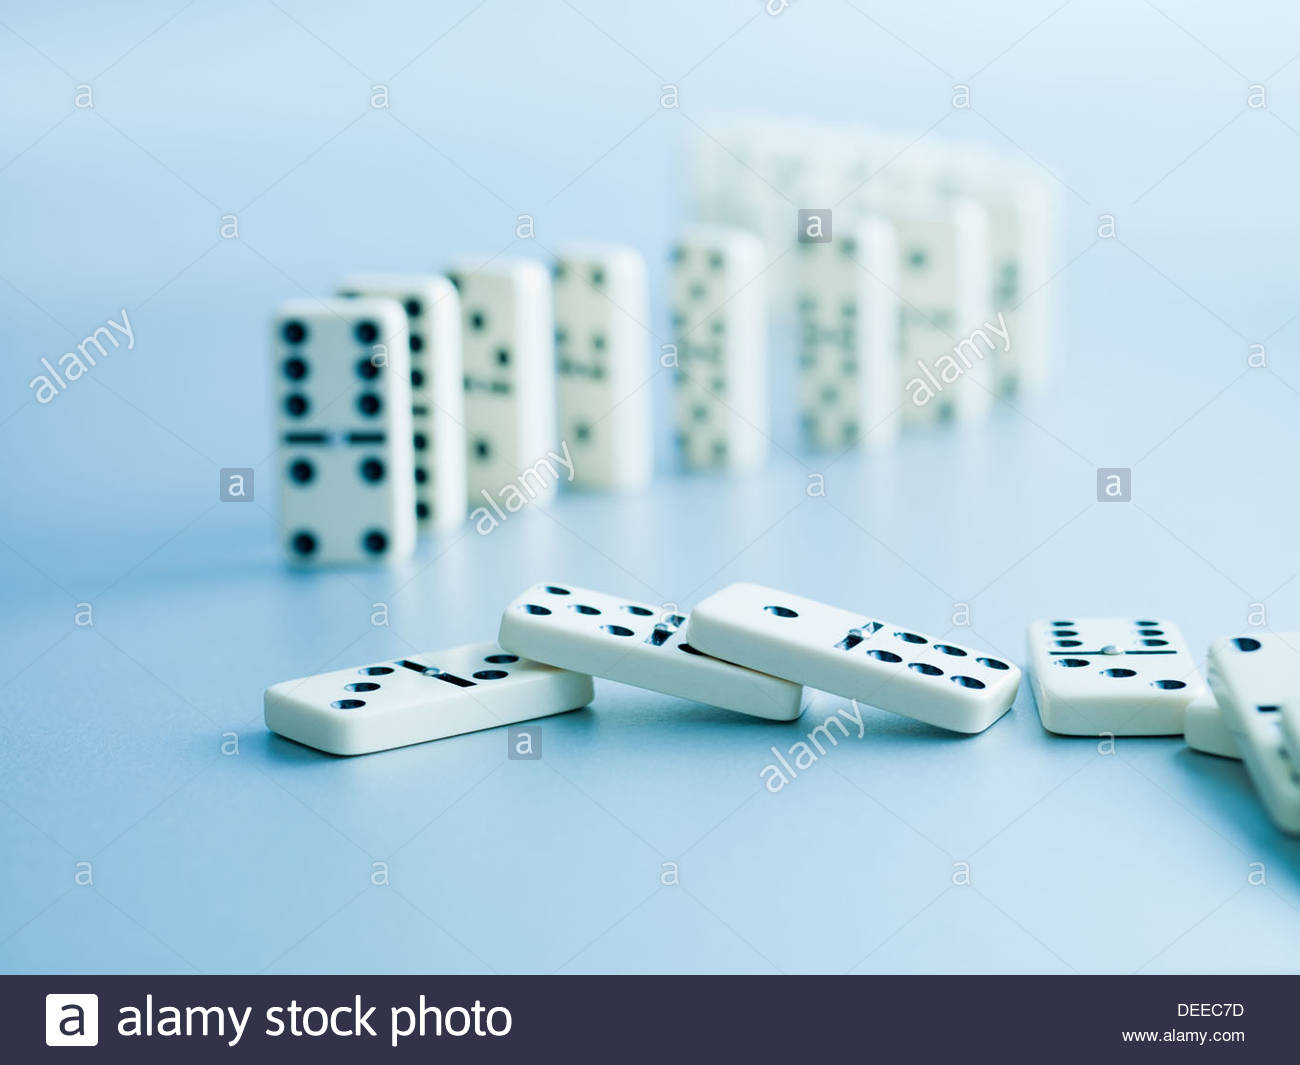 Dominoes fallen - Stock Image